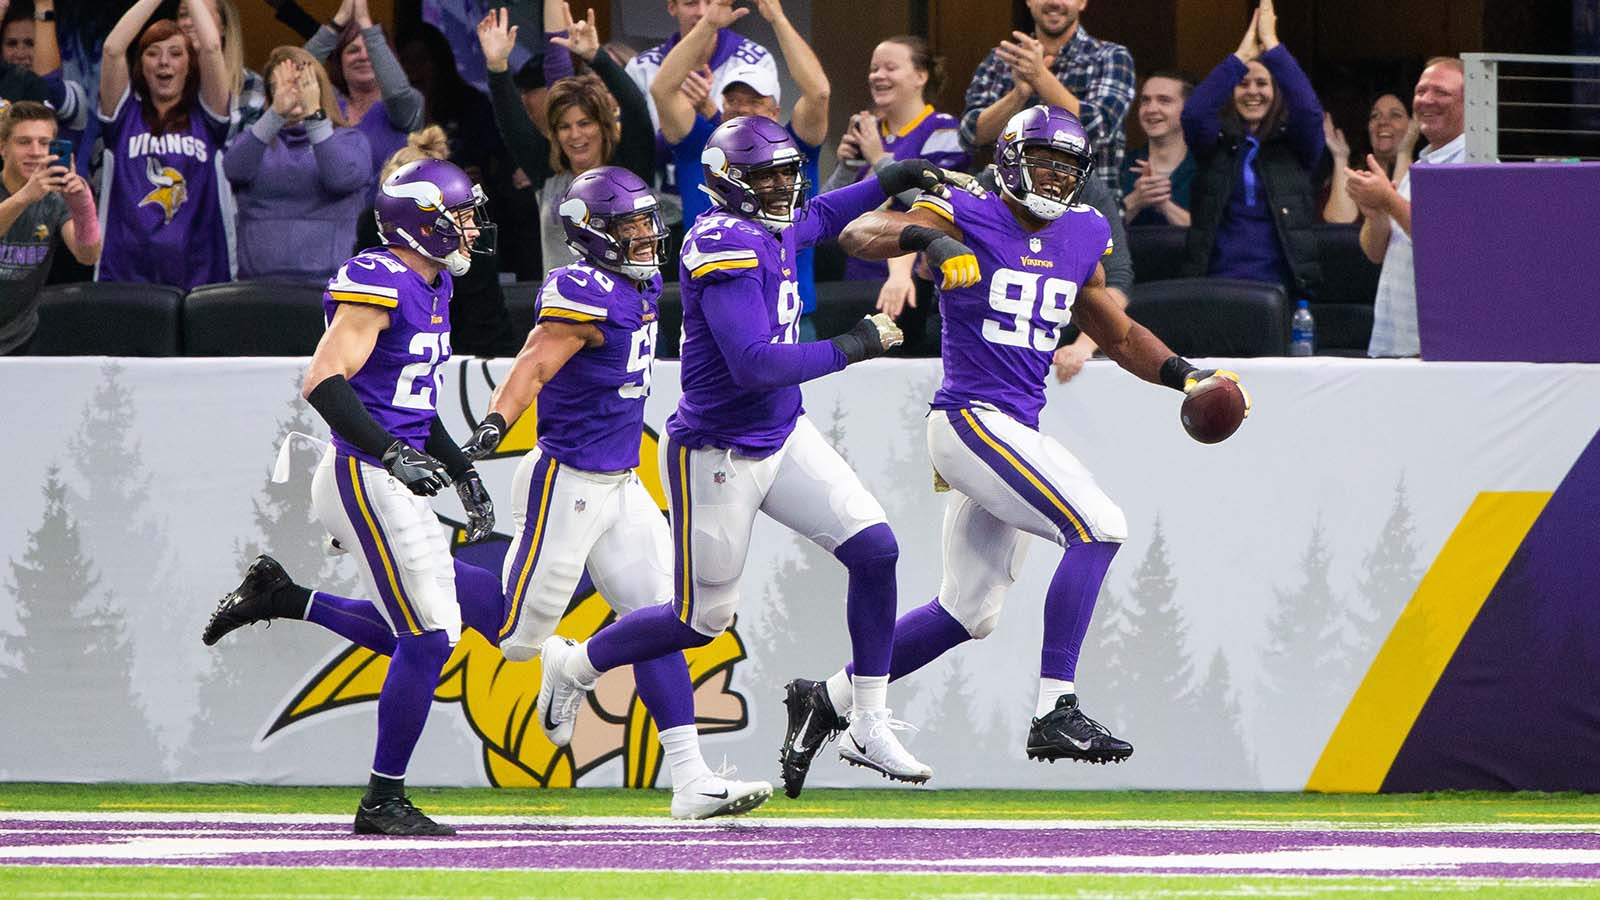 Nov 4, 2018; Minneapolis, MN, USA; Minnesota Vikings defensive lineman Danielle Hunter (99) celebrates after a fumble recovery for a touchdown in the fourth quarter against the Detroit Lions at U.S. Bank Stadium. Mandatory Credit: Brad Rempel-USA TODAY Sports